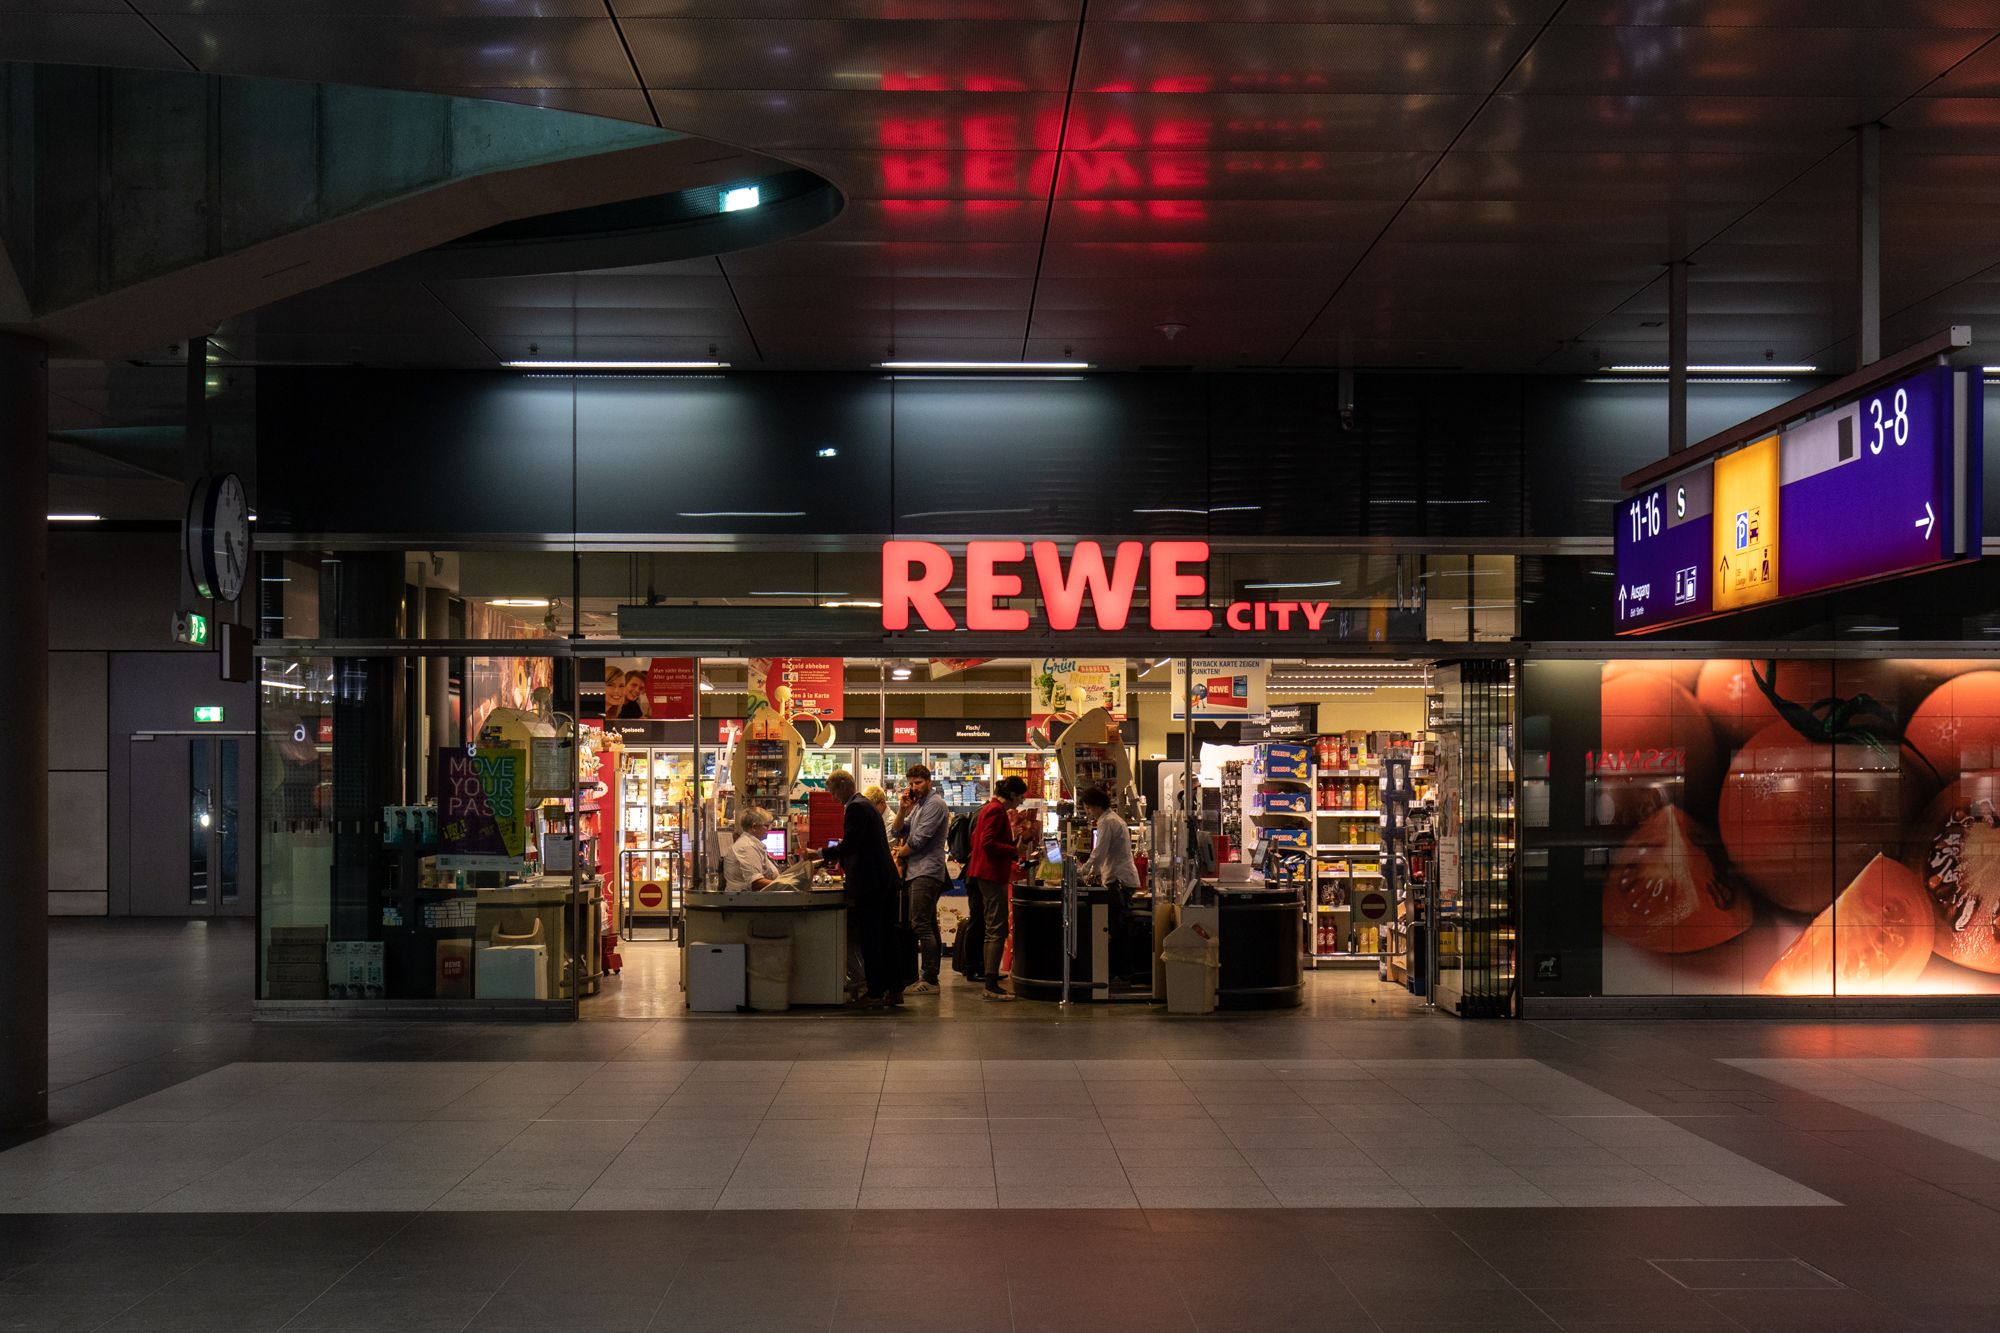 REWE Hauptbahnhof - Supermarkets open Sundays in Berlin